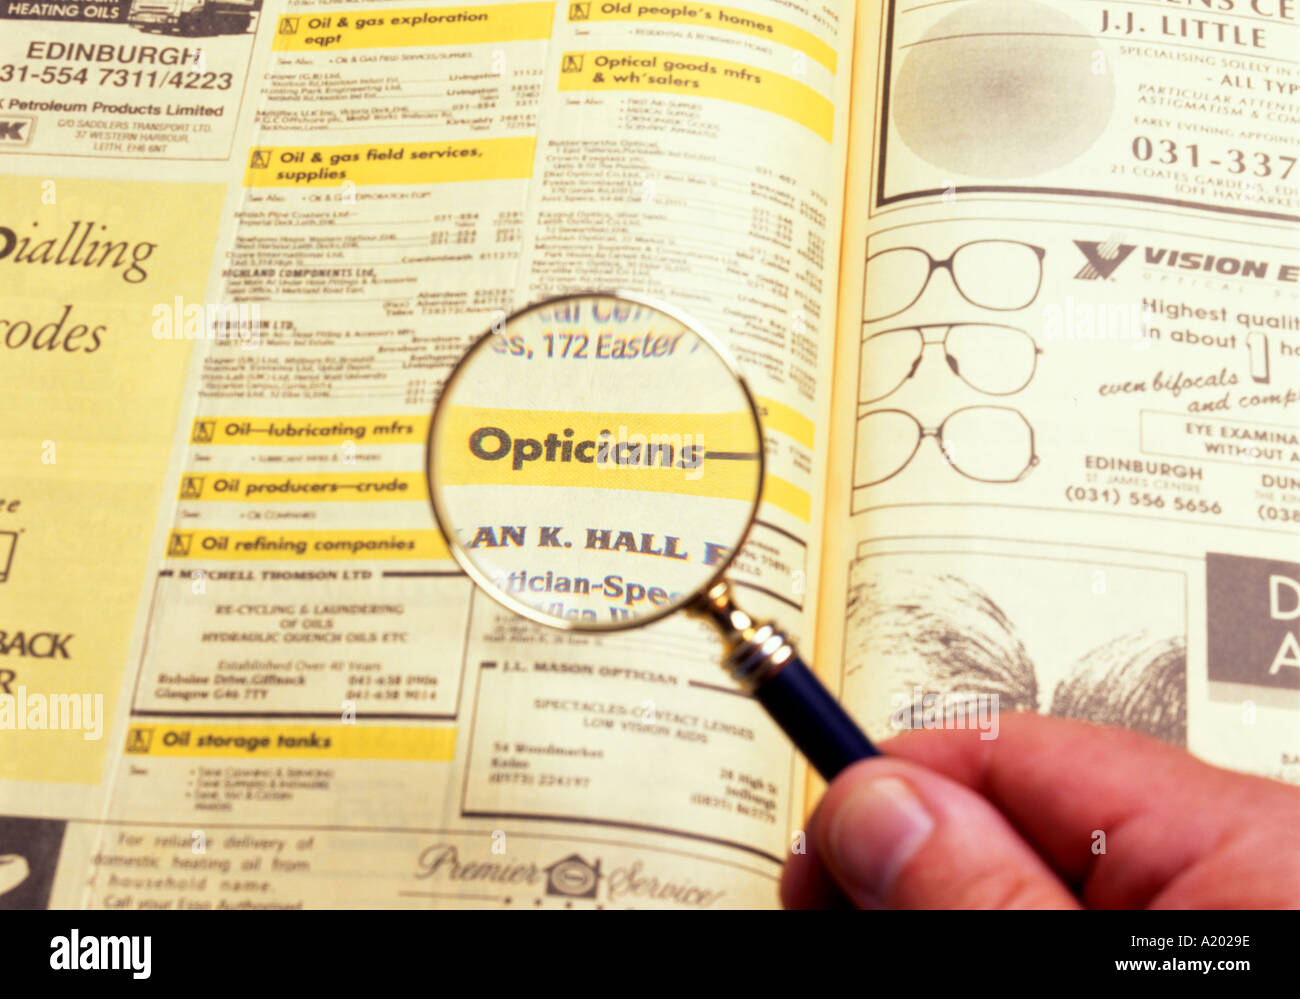 Yellow Pages Stock Photos & Yellow Pages Stock Images - Alamy